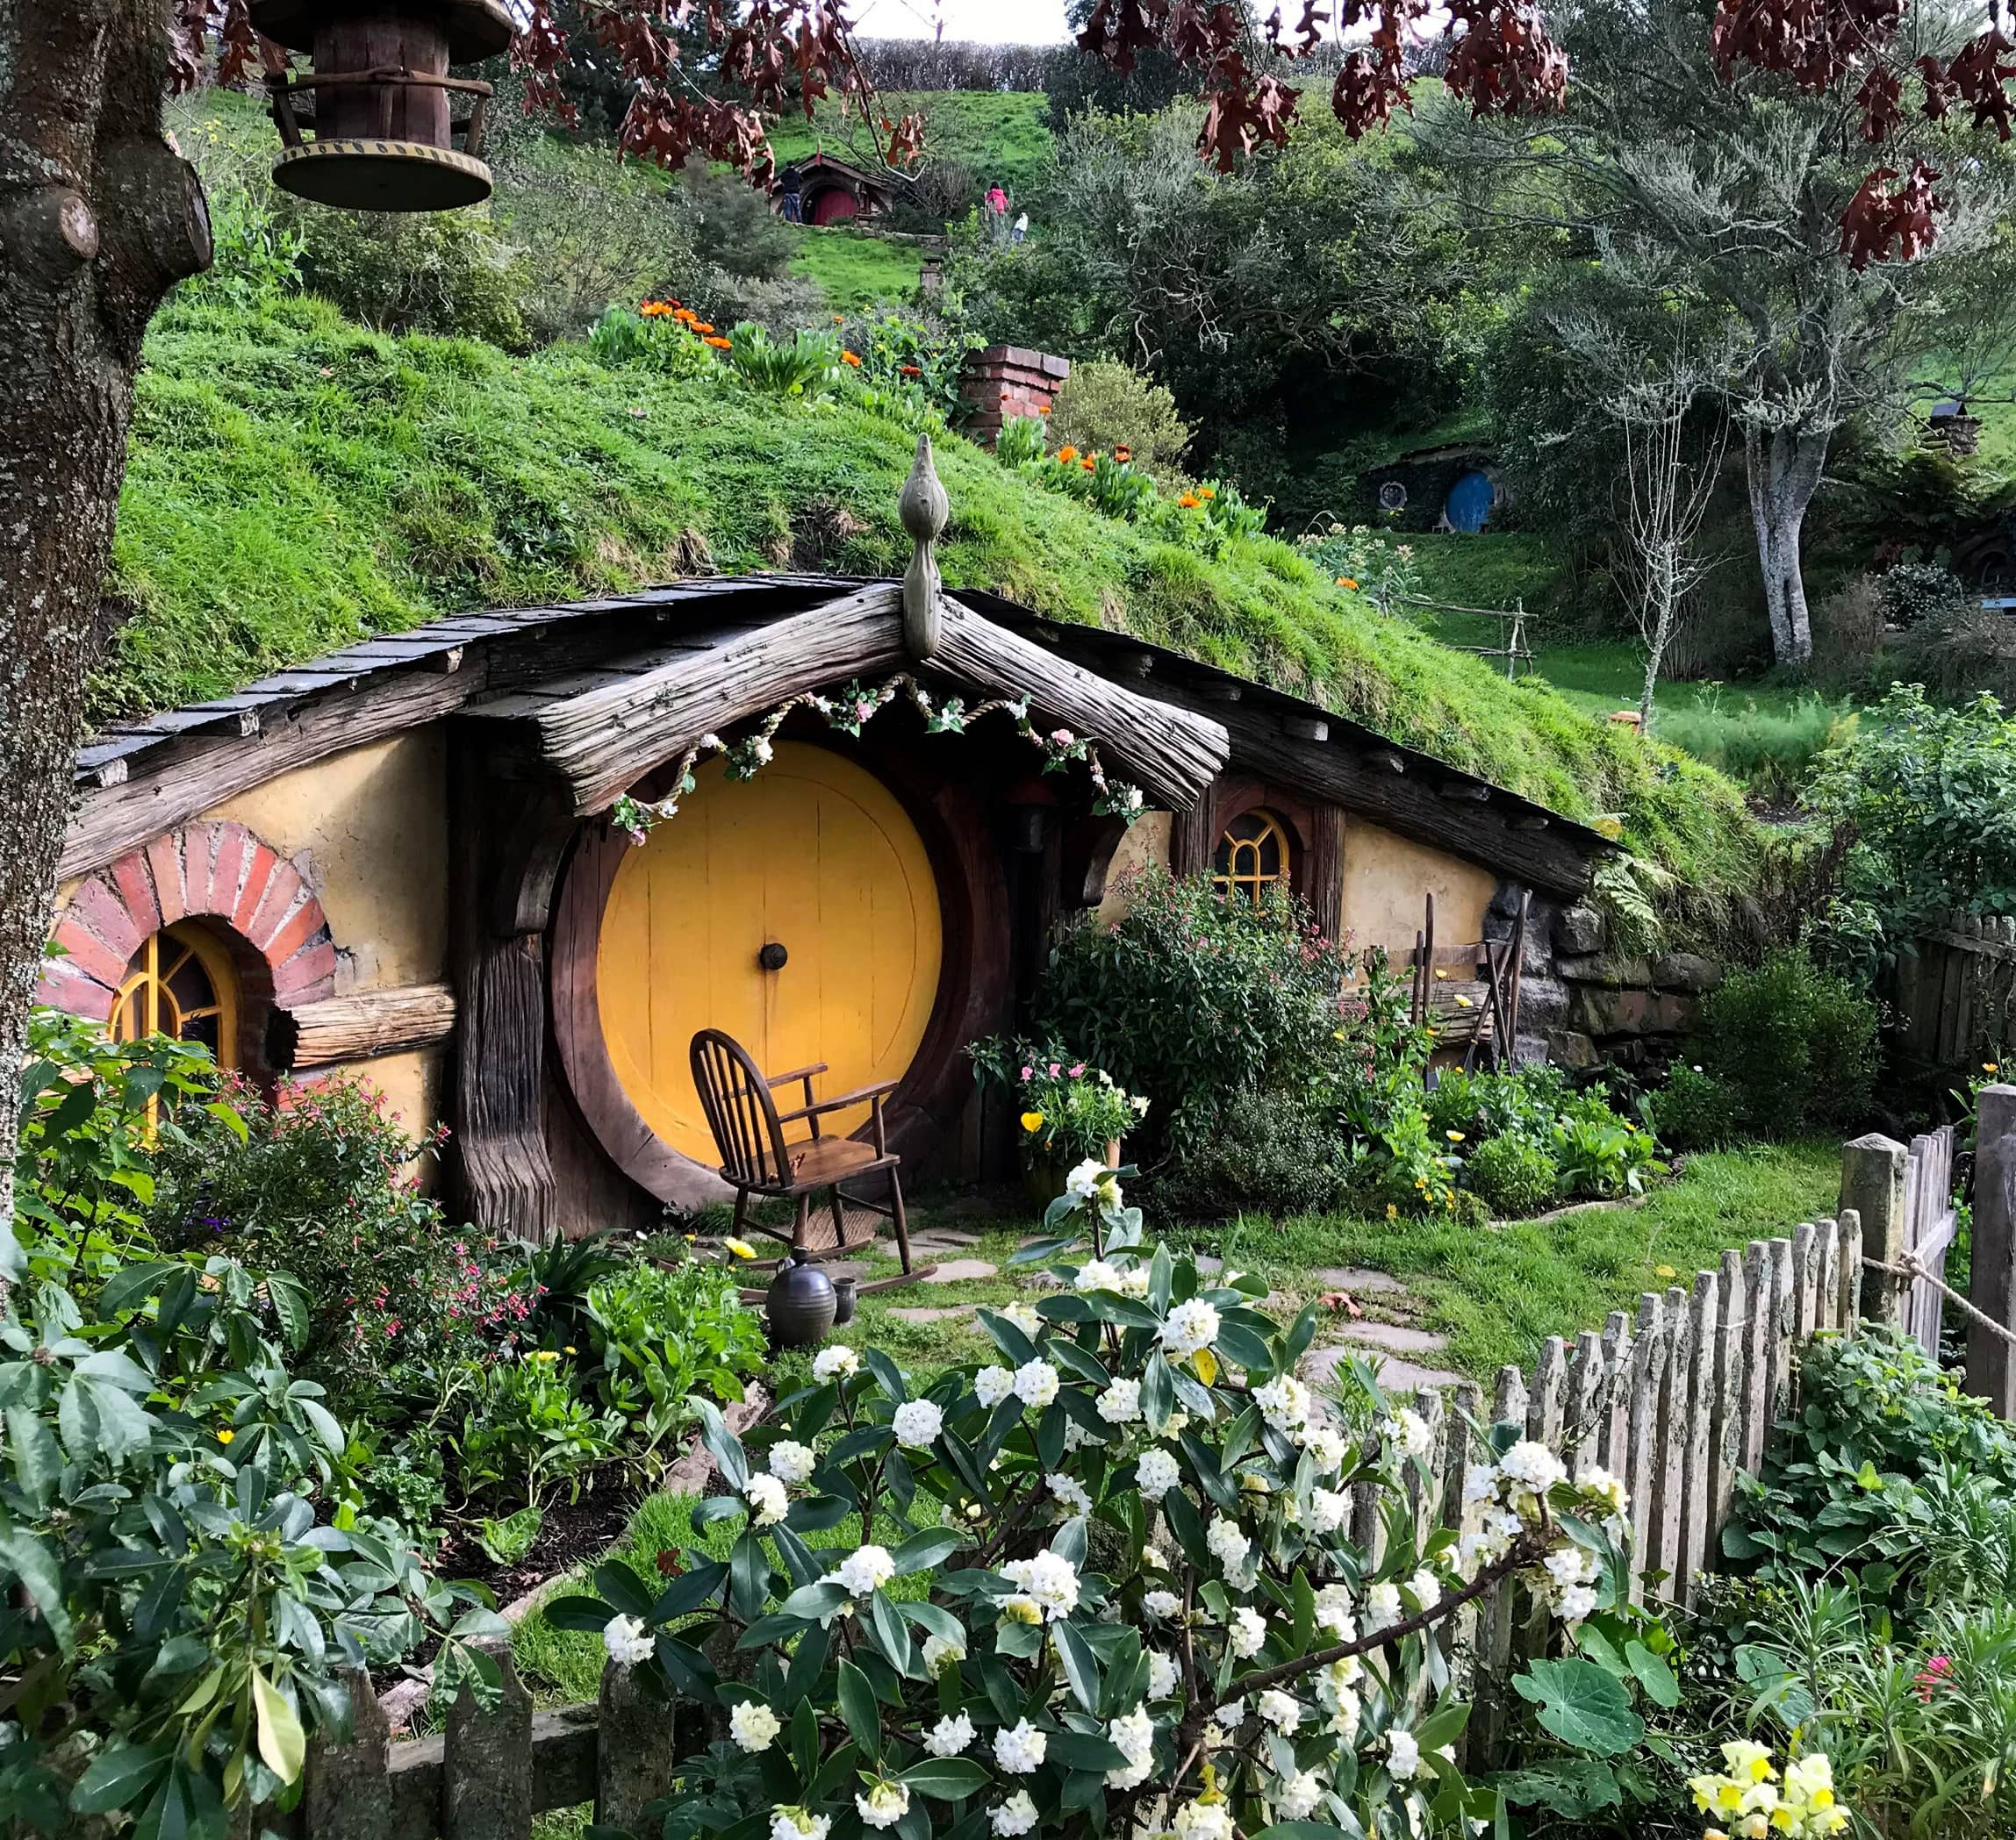 Welcome To Orcland: Lord Of The Rings To Film In New Zealand